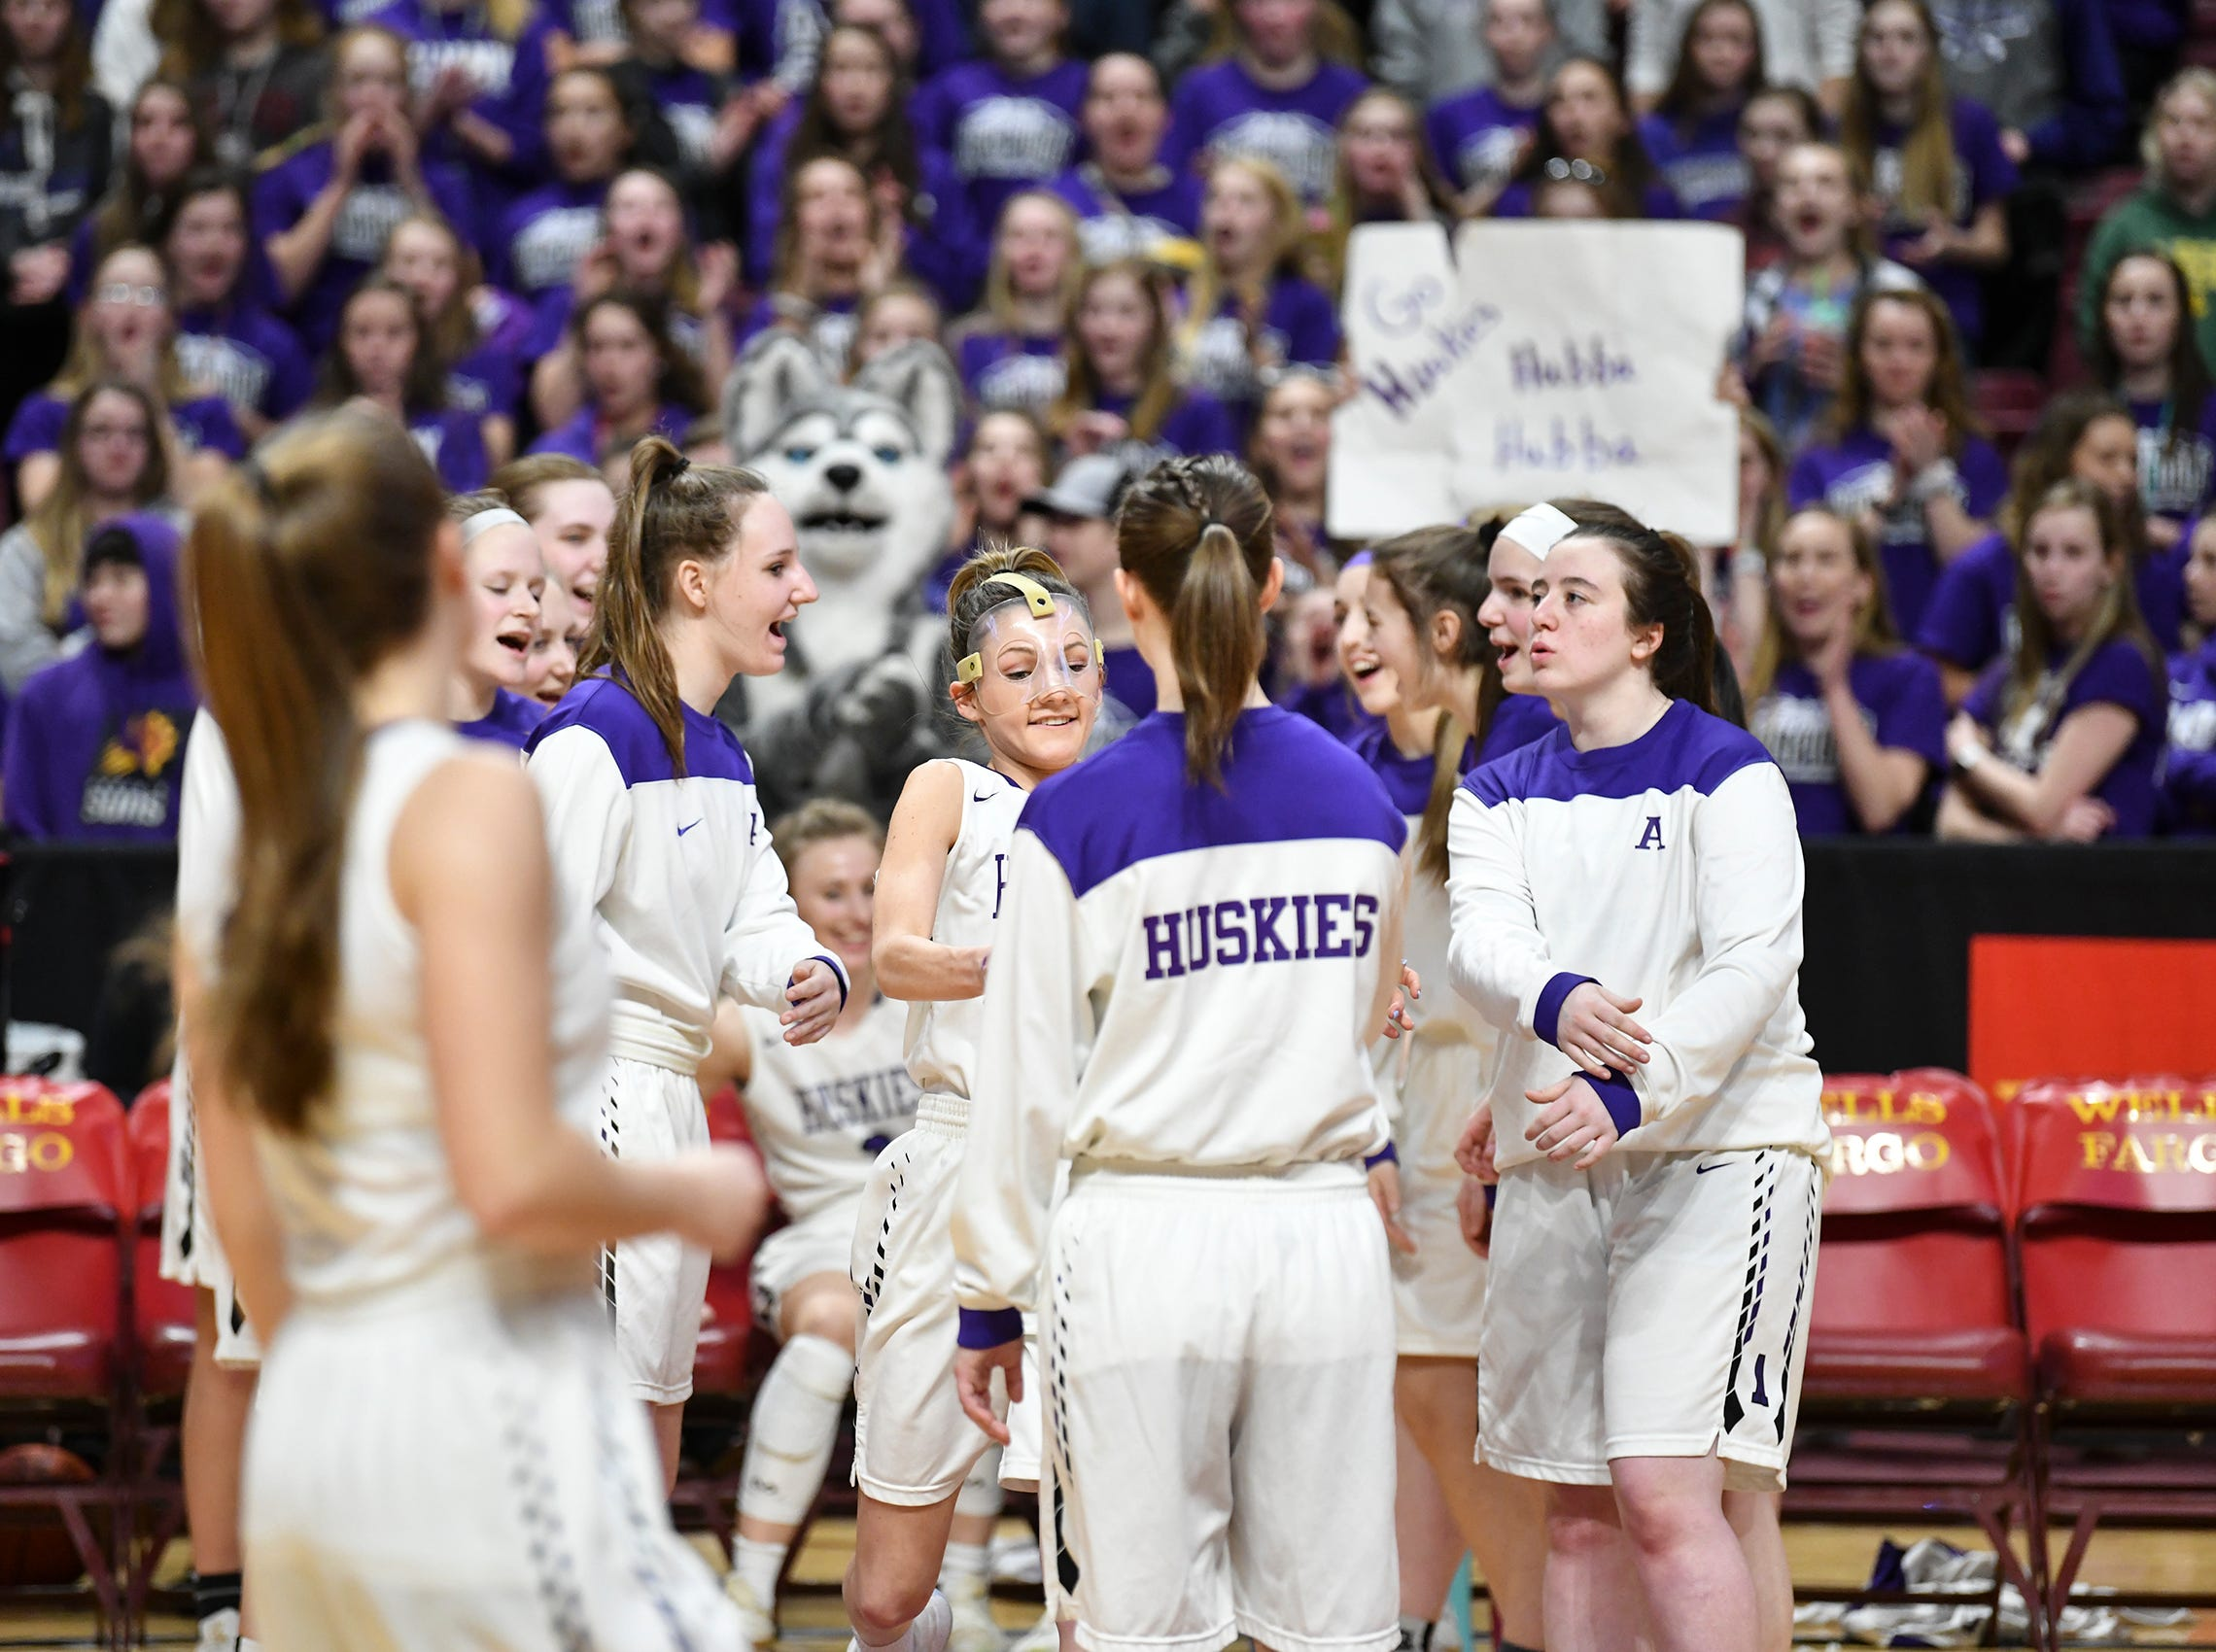 Albany players are introduced during the state Class 2A quarterfinals game Wednesday, March 13, at the University of Minnesota in Minneapolis.